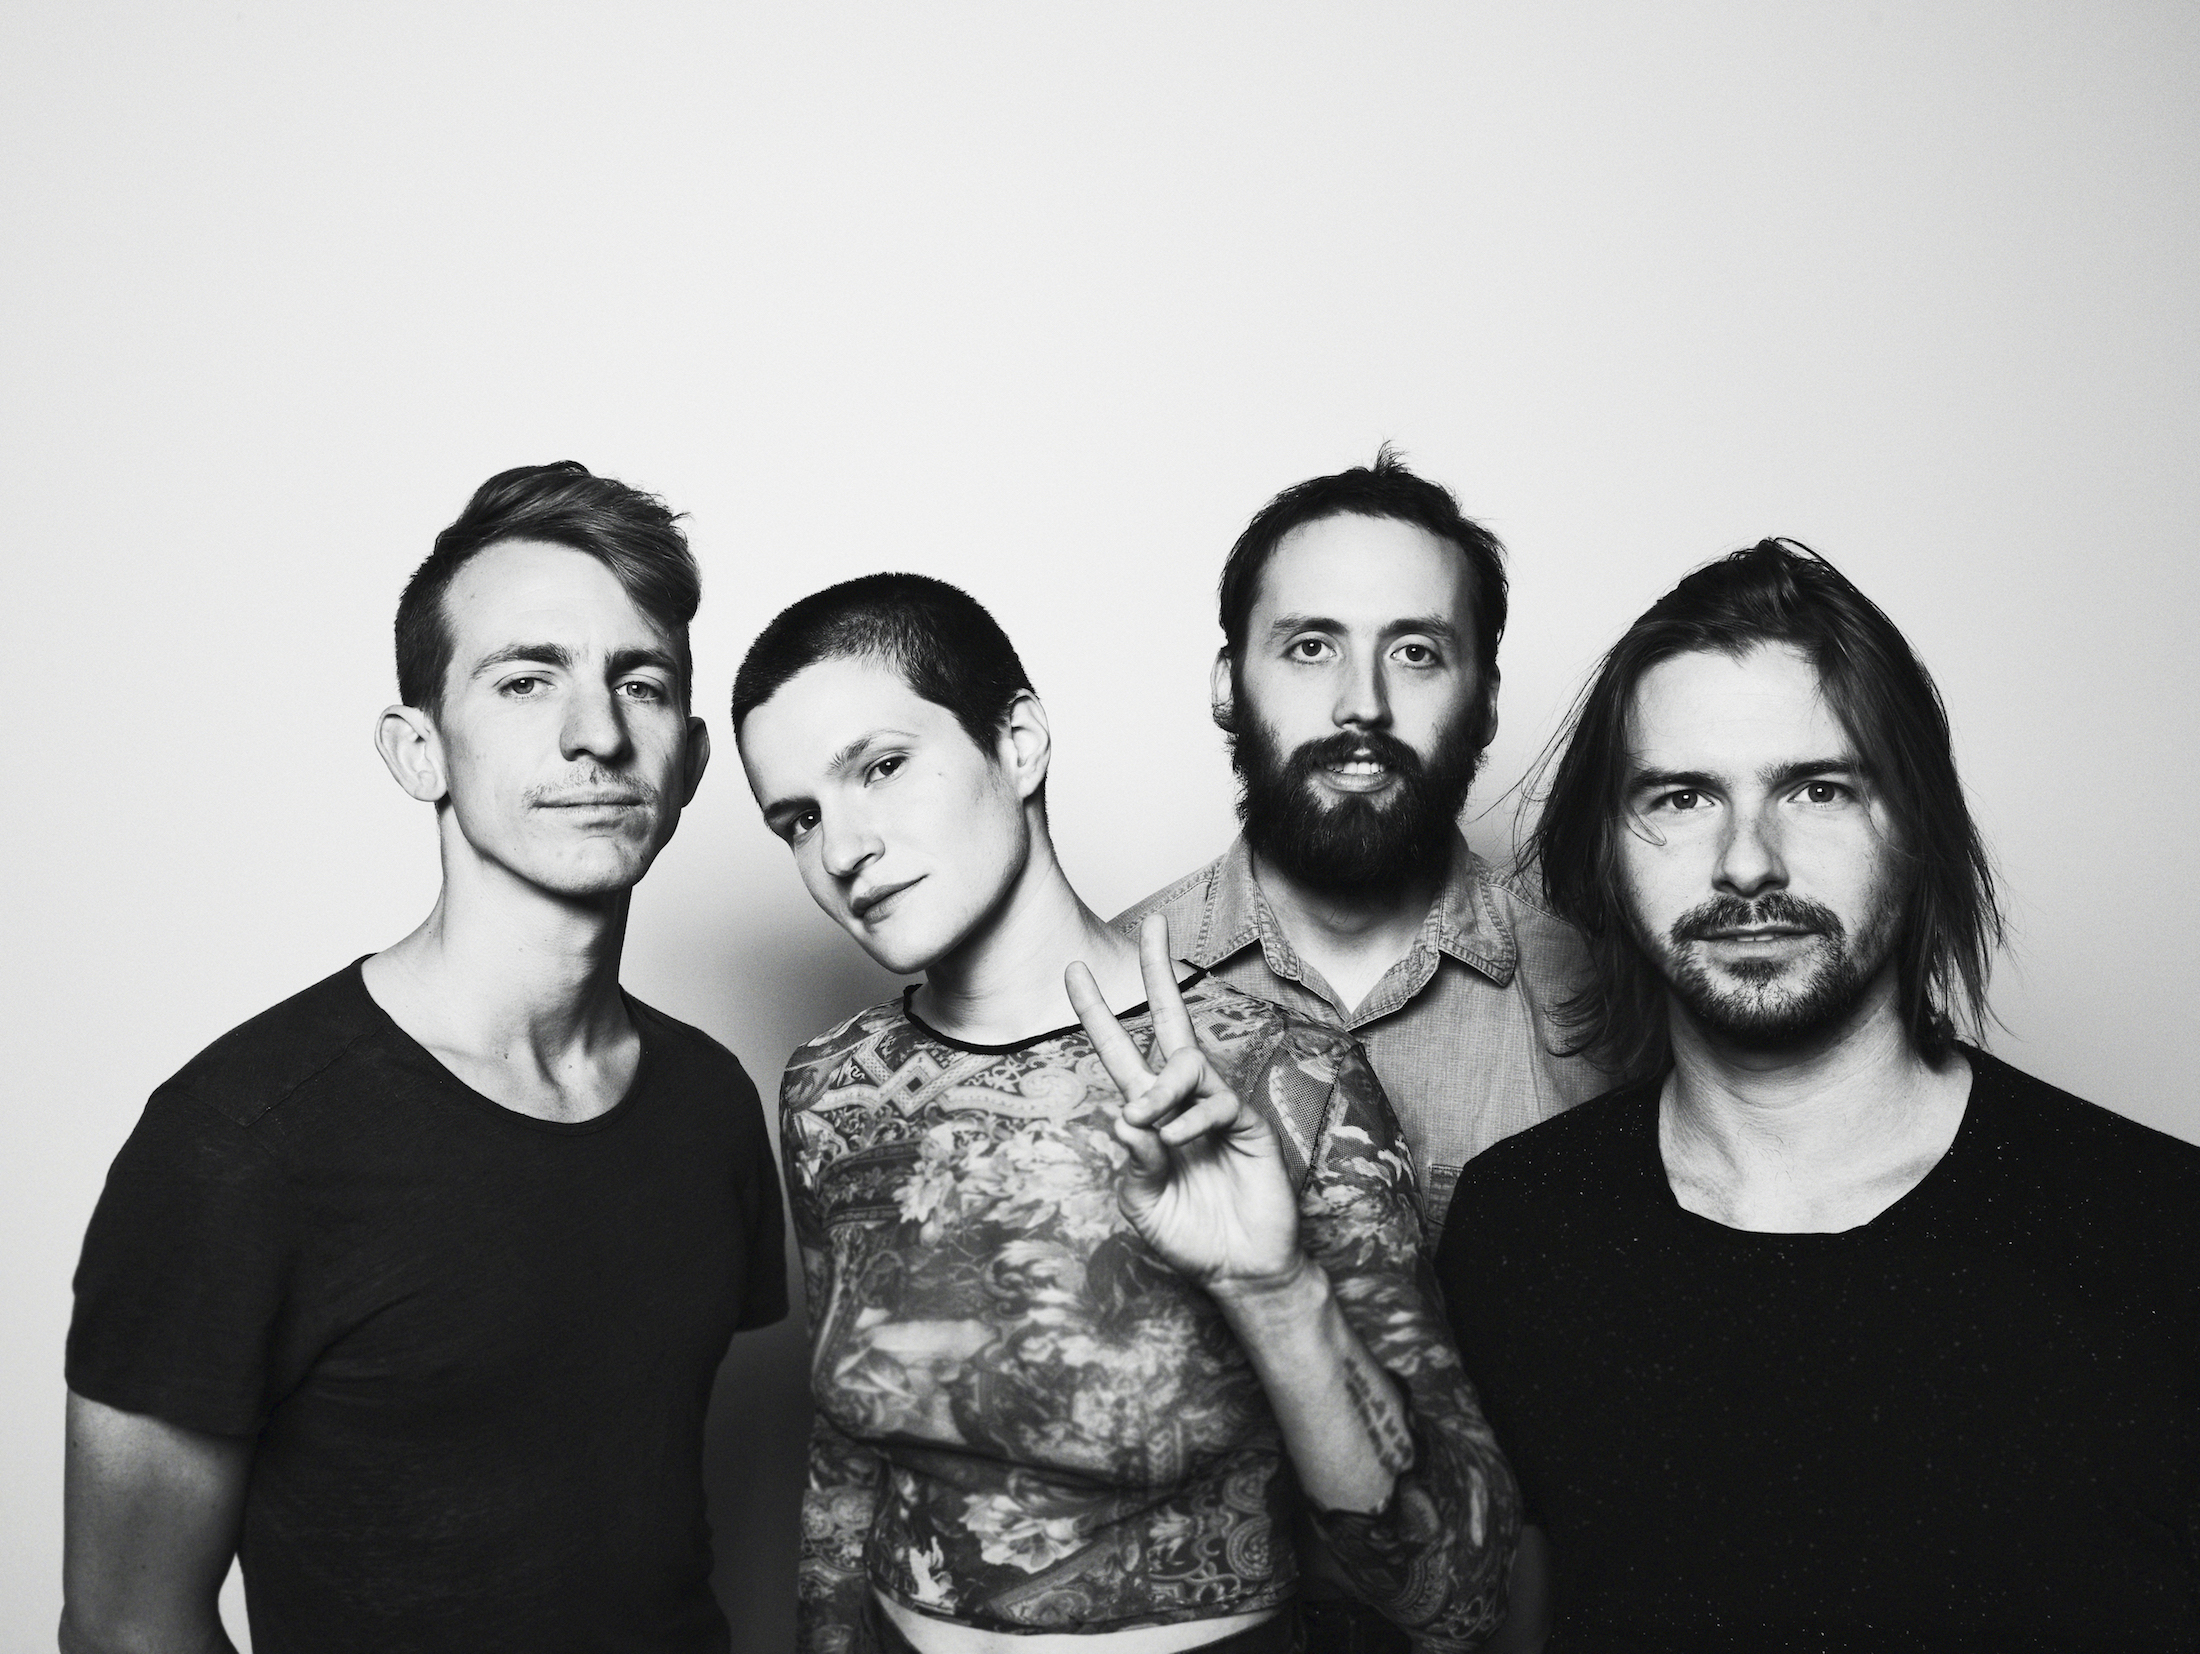 Our interview with Big Thief: